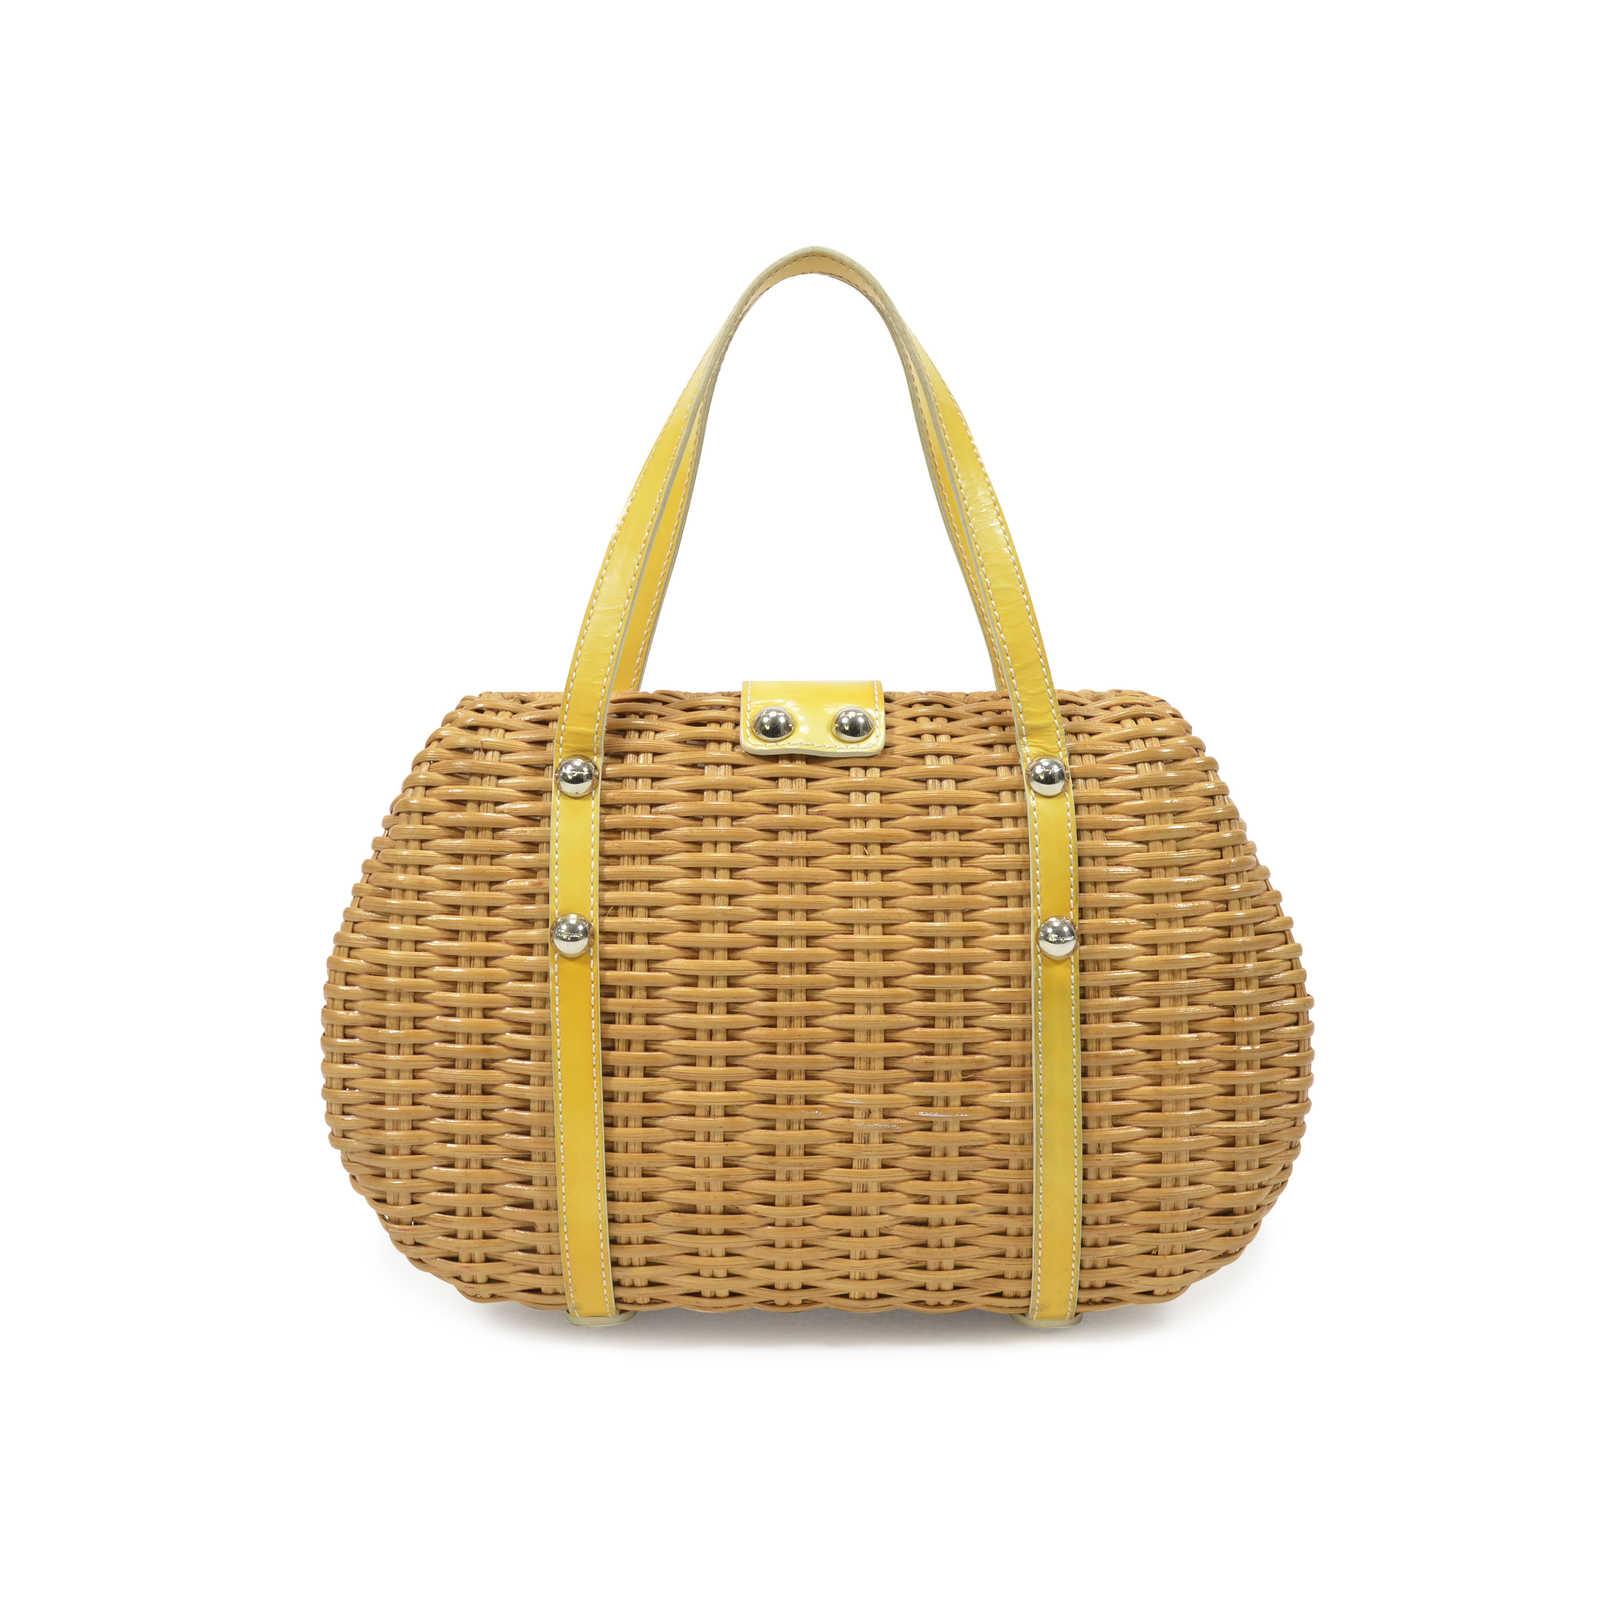 611703129a1d ... Authentic Second Hand Salvatore Ferragamo Wicker Handbag  (PSS-359-00001) - Thumbnail ...